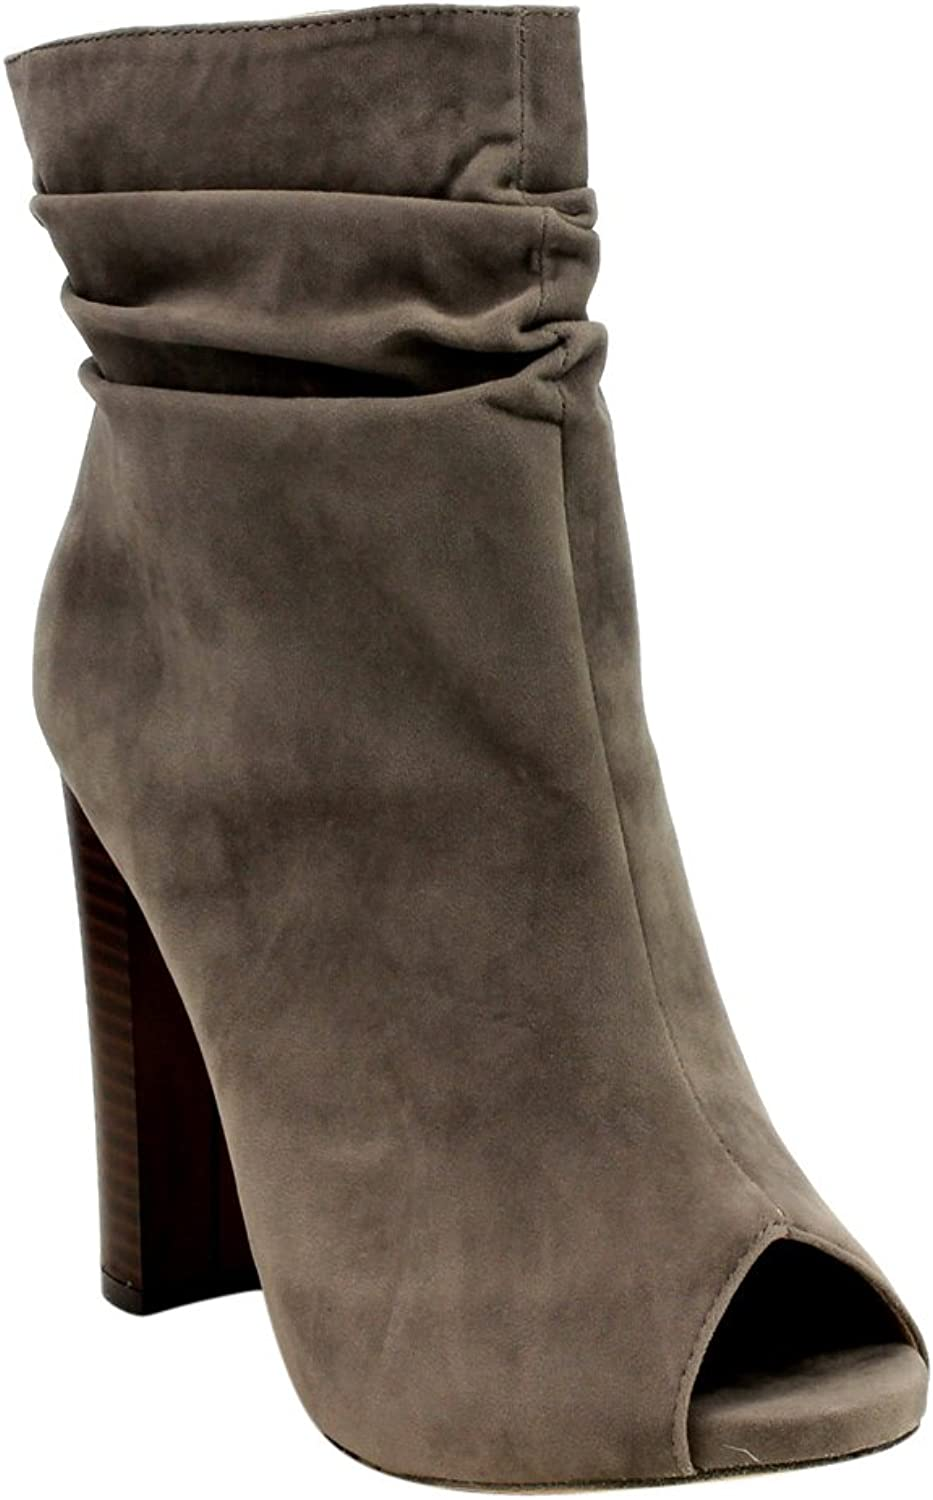 Chase & Chloe Ivy-1 Women's Ruched Zip High Stacked Heel Ankle Booties